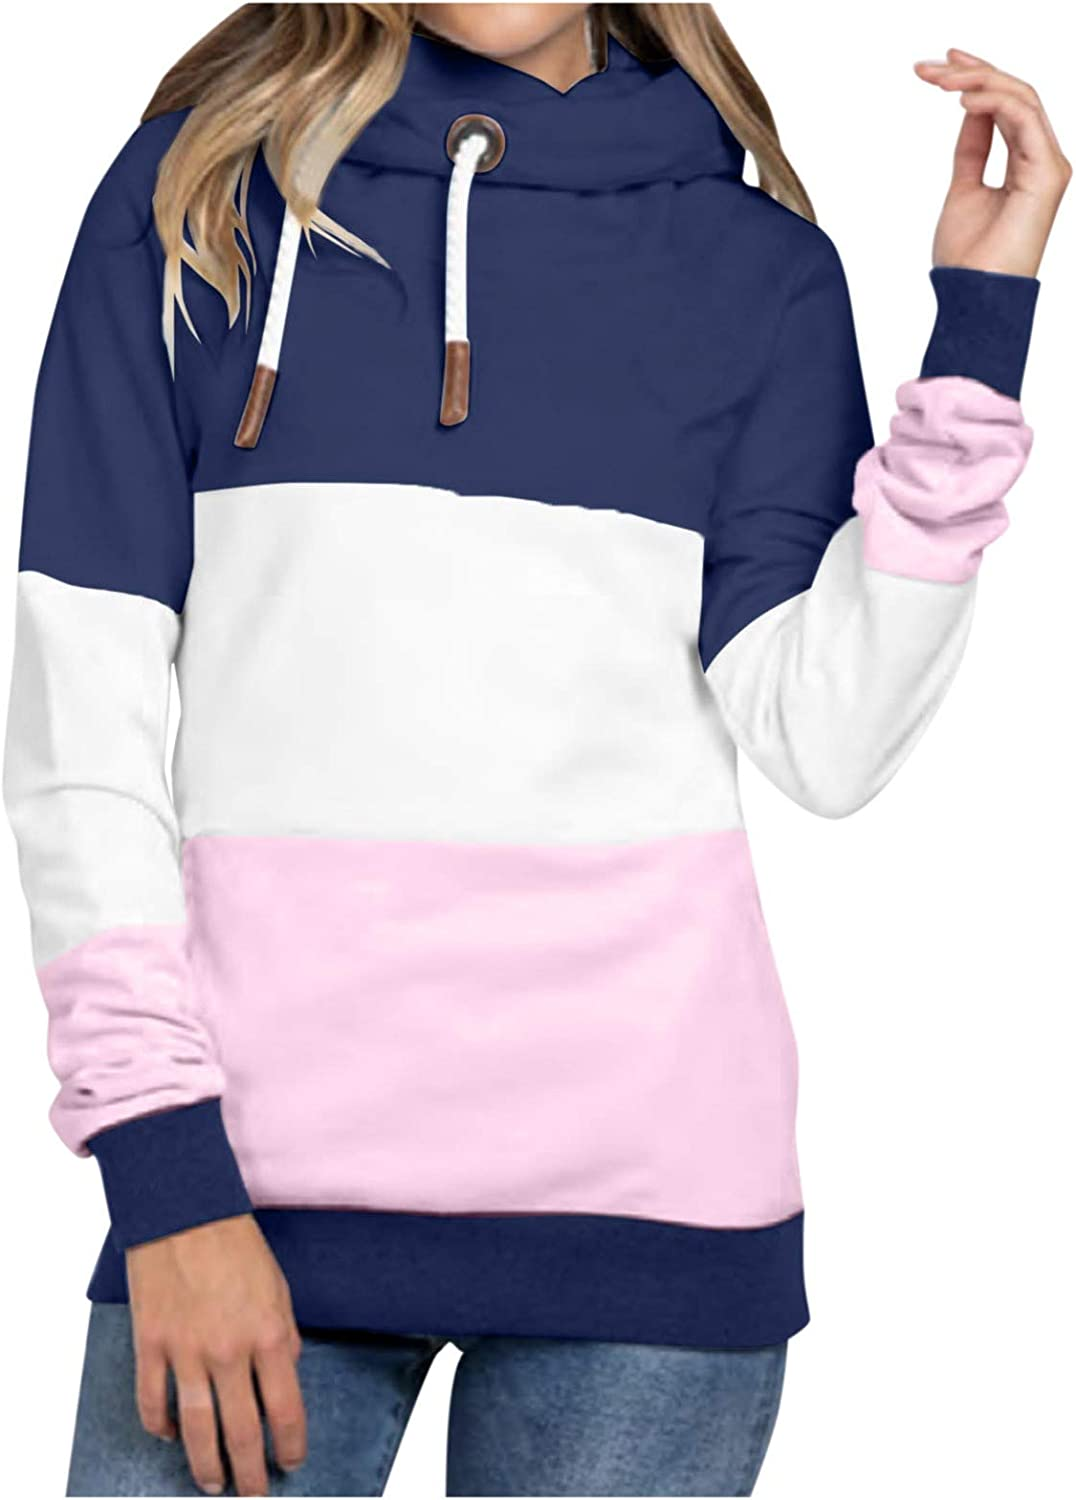 AODONG Women Sweatshirts Pullover,Womens Color Block Pacthwork Sweatshirt Casul Oversized Loose Fit Hooded Pullover